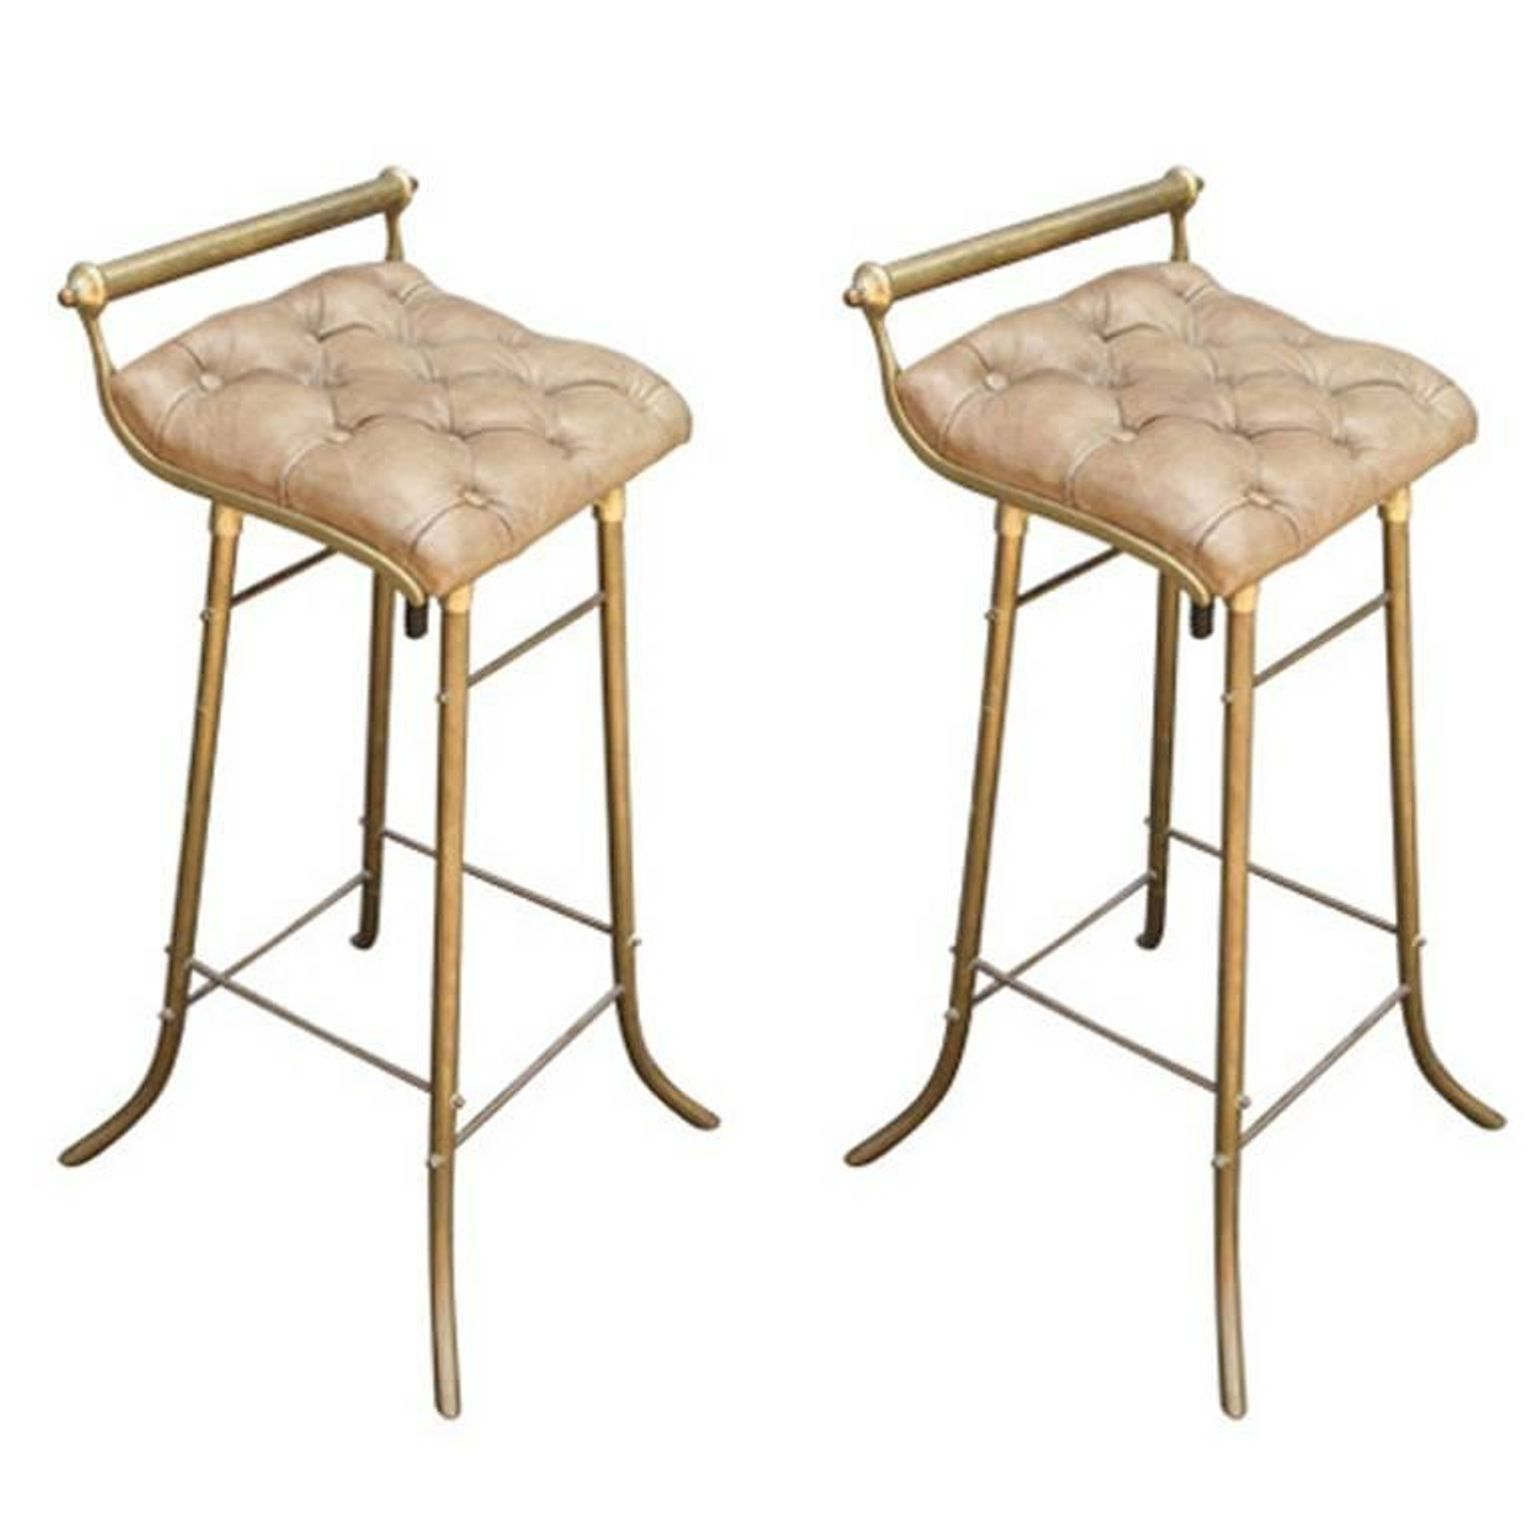 Pair Of French Leather And Brass Bar Stools Midcentury Modern